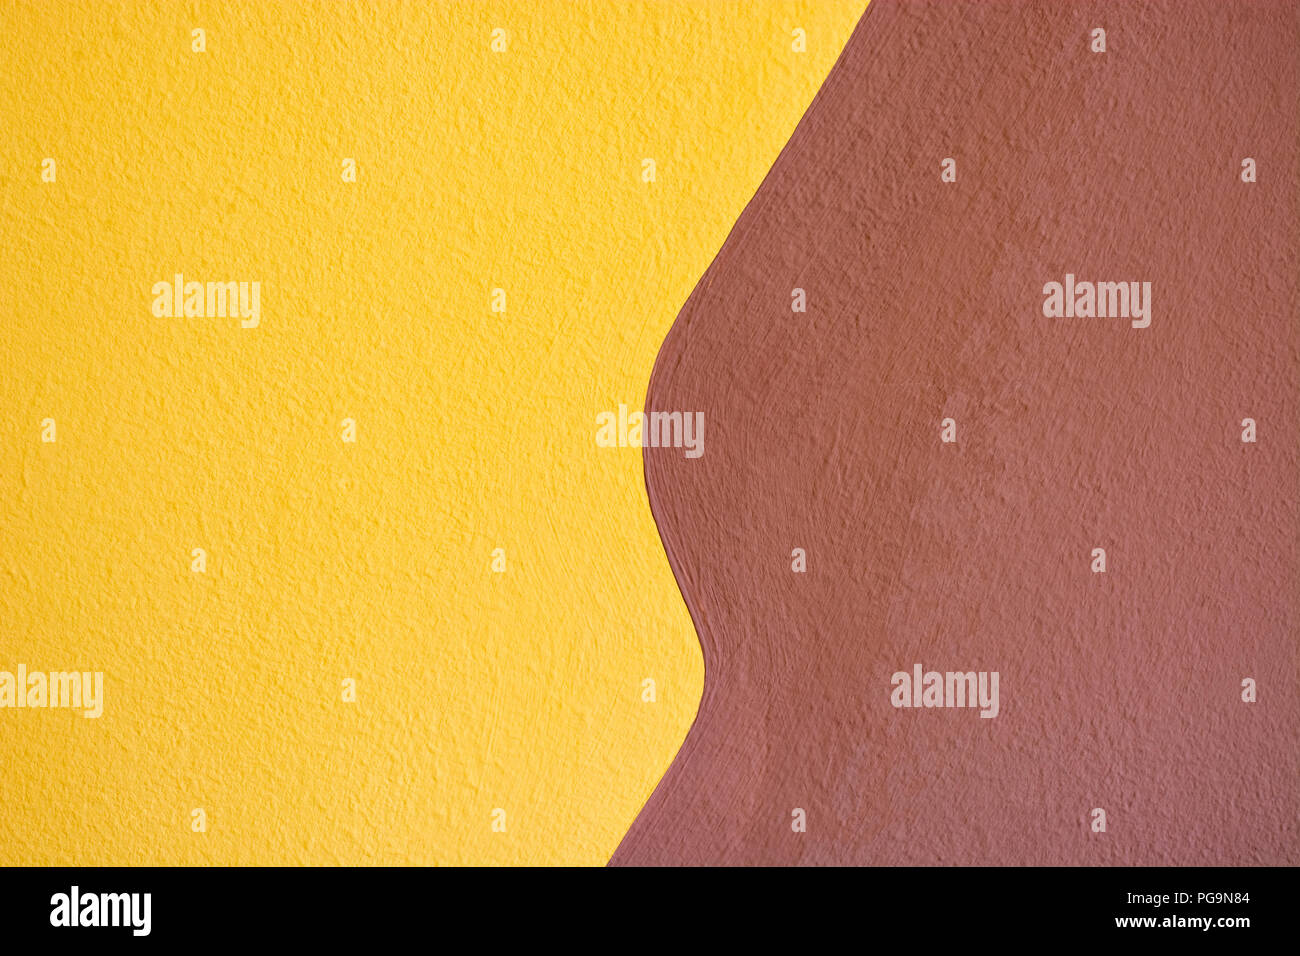 A fragment of a wall plastered in two colors, yellow and brown, for use as a background. - Stock Image